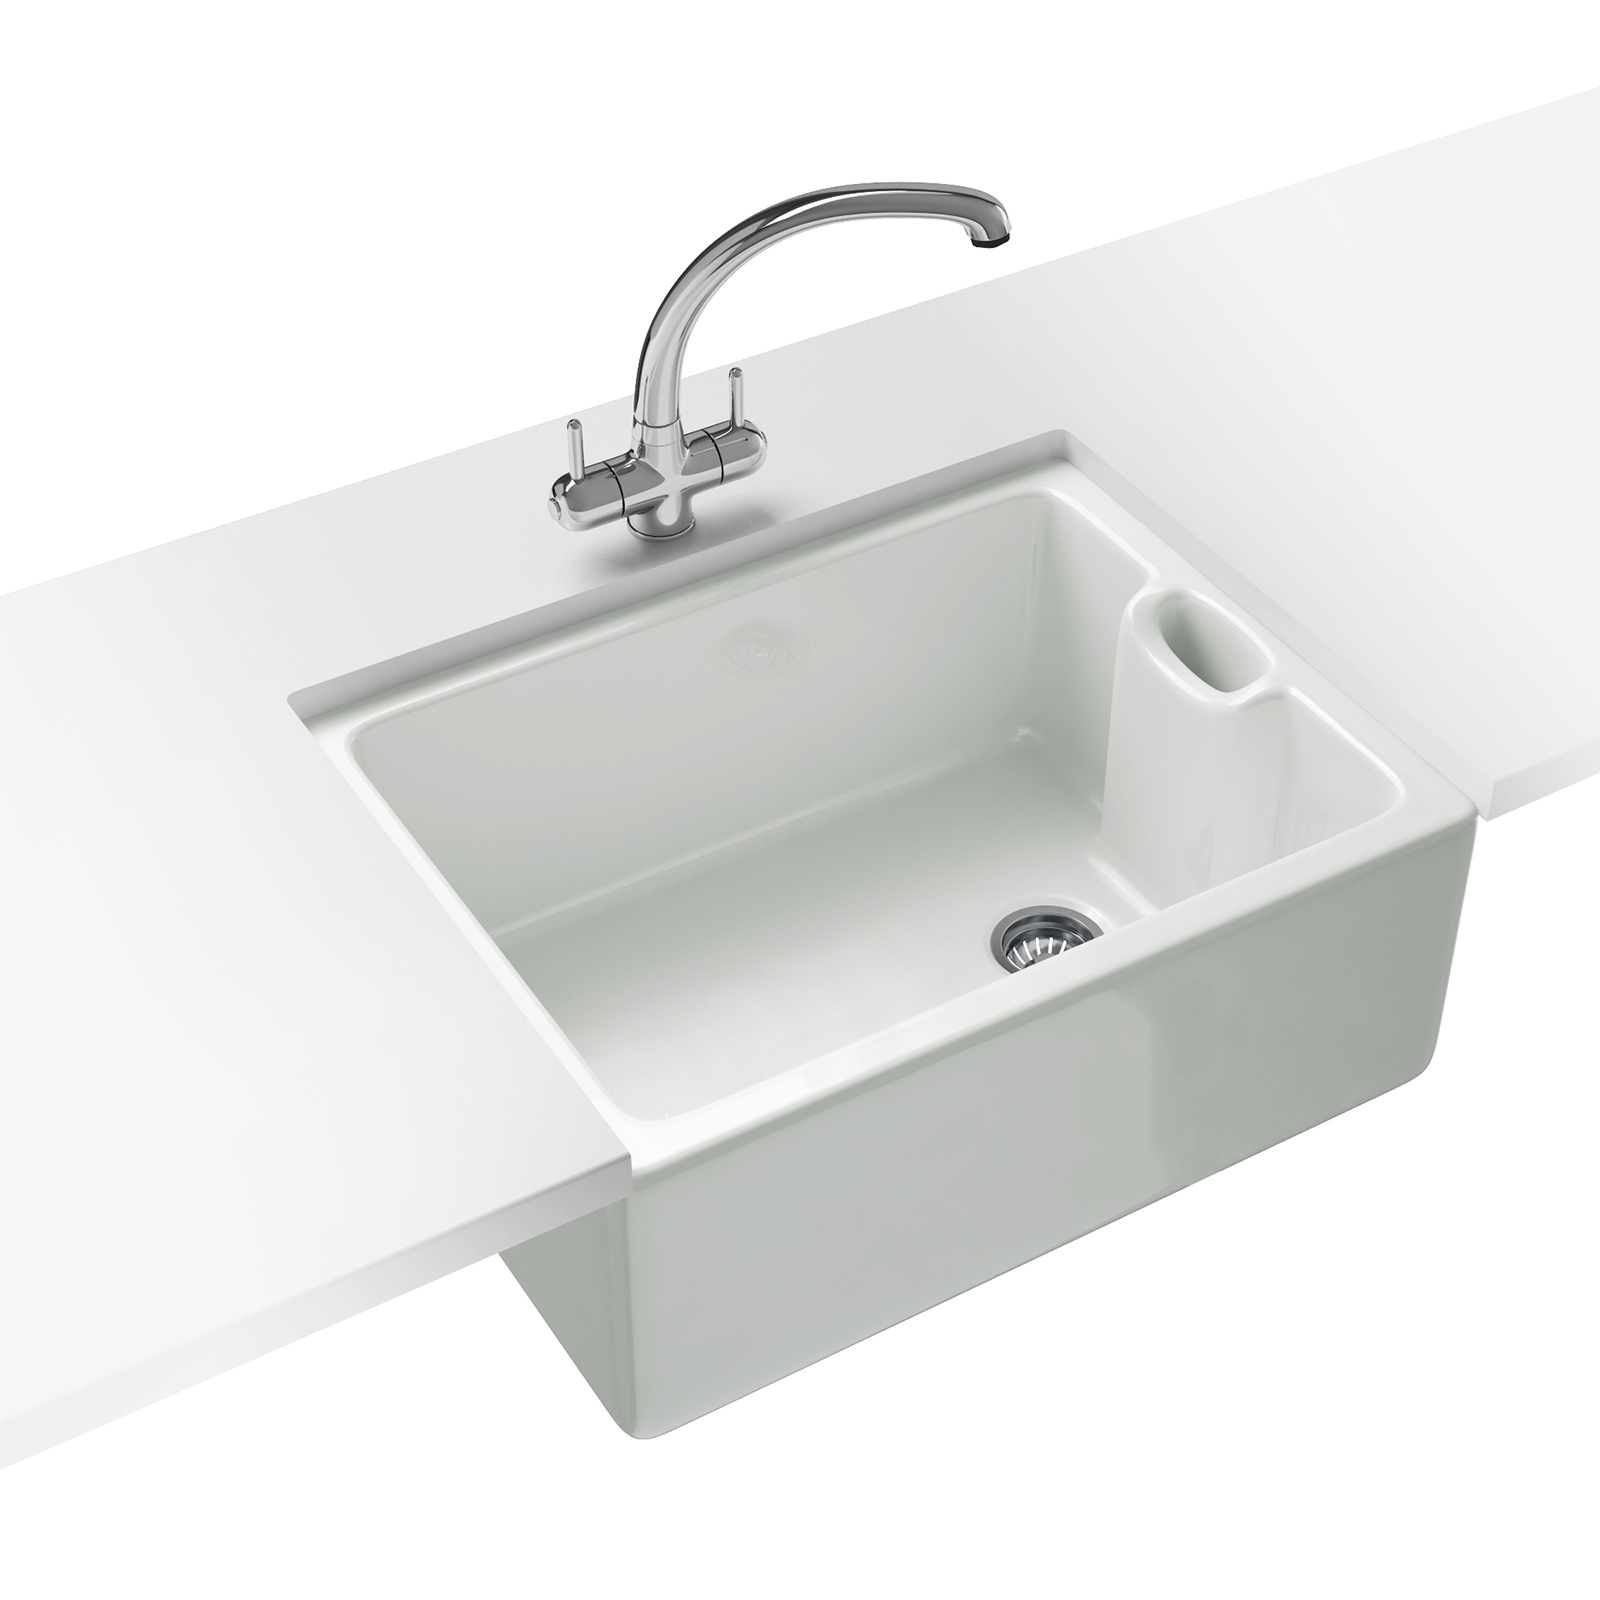 white kitchen sink Belfast Propack BAK Ceramic White Kitchen Sink And Tap